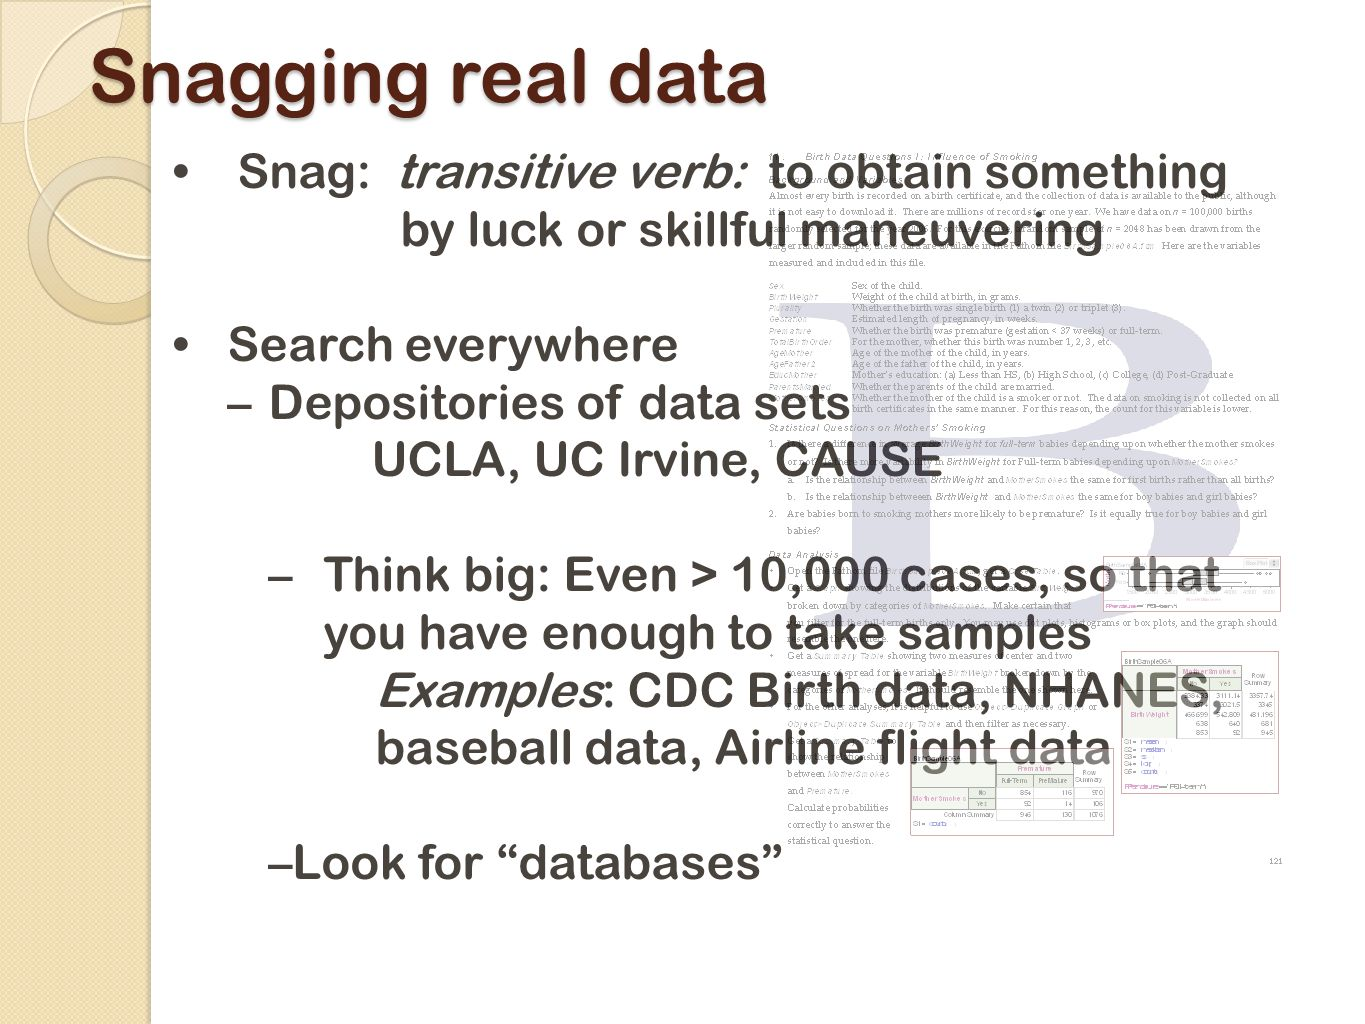 Snagging real data Snag: transitive verb: to obtain something by luck or skillful maneuvering Search everywhere –Depositories of data sets UCLA, UC Irvine, CAUSE –Think big: Even > 10,000 cases, so that you have enough to take samples Examples: CDC Birth data, NHANES, baseball data, Airline flight data –Look for databases